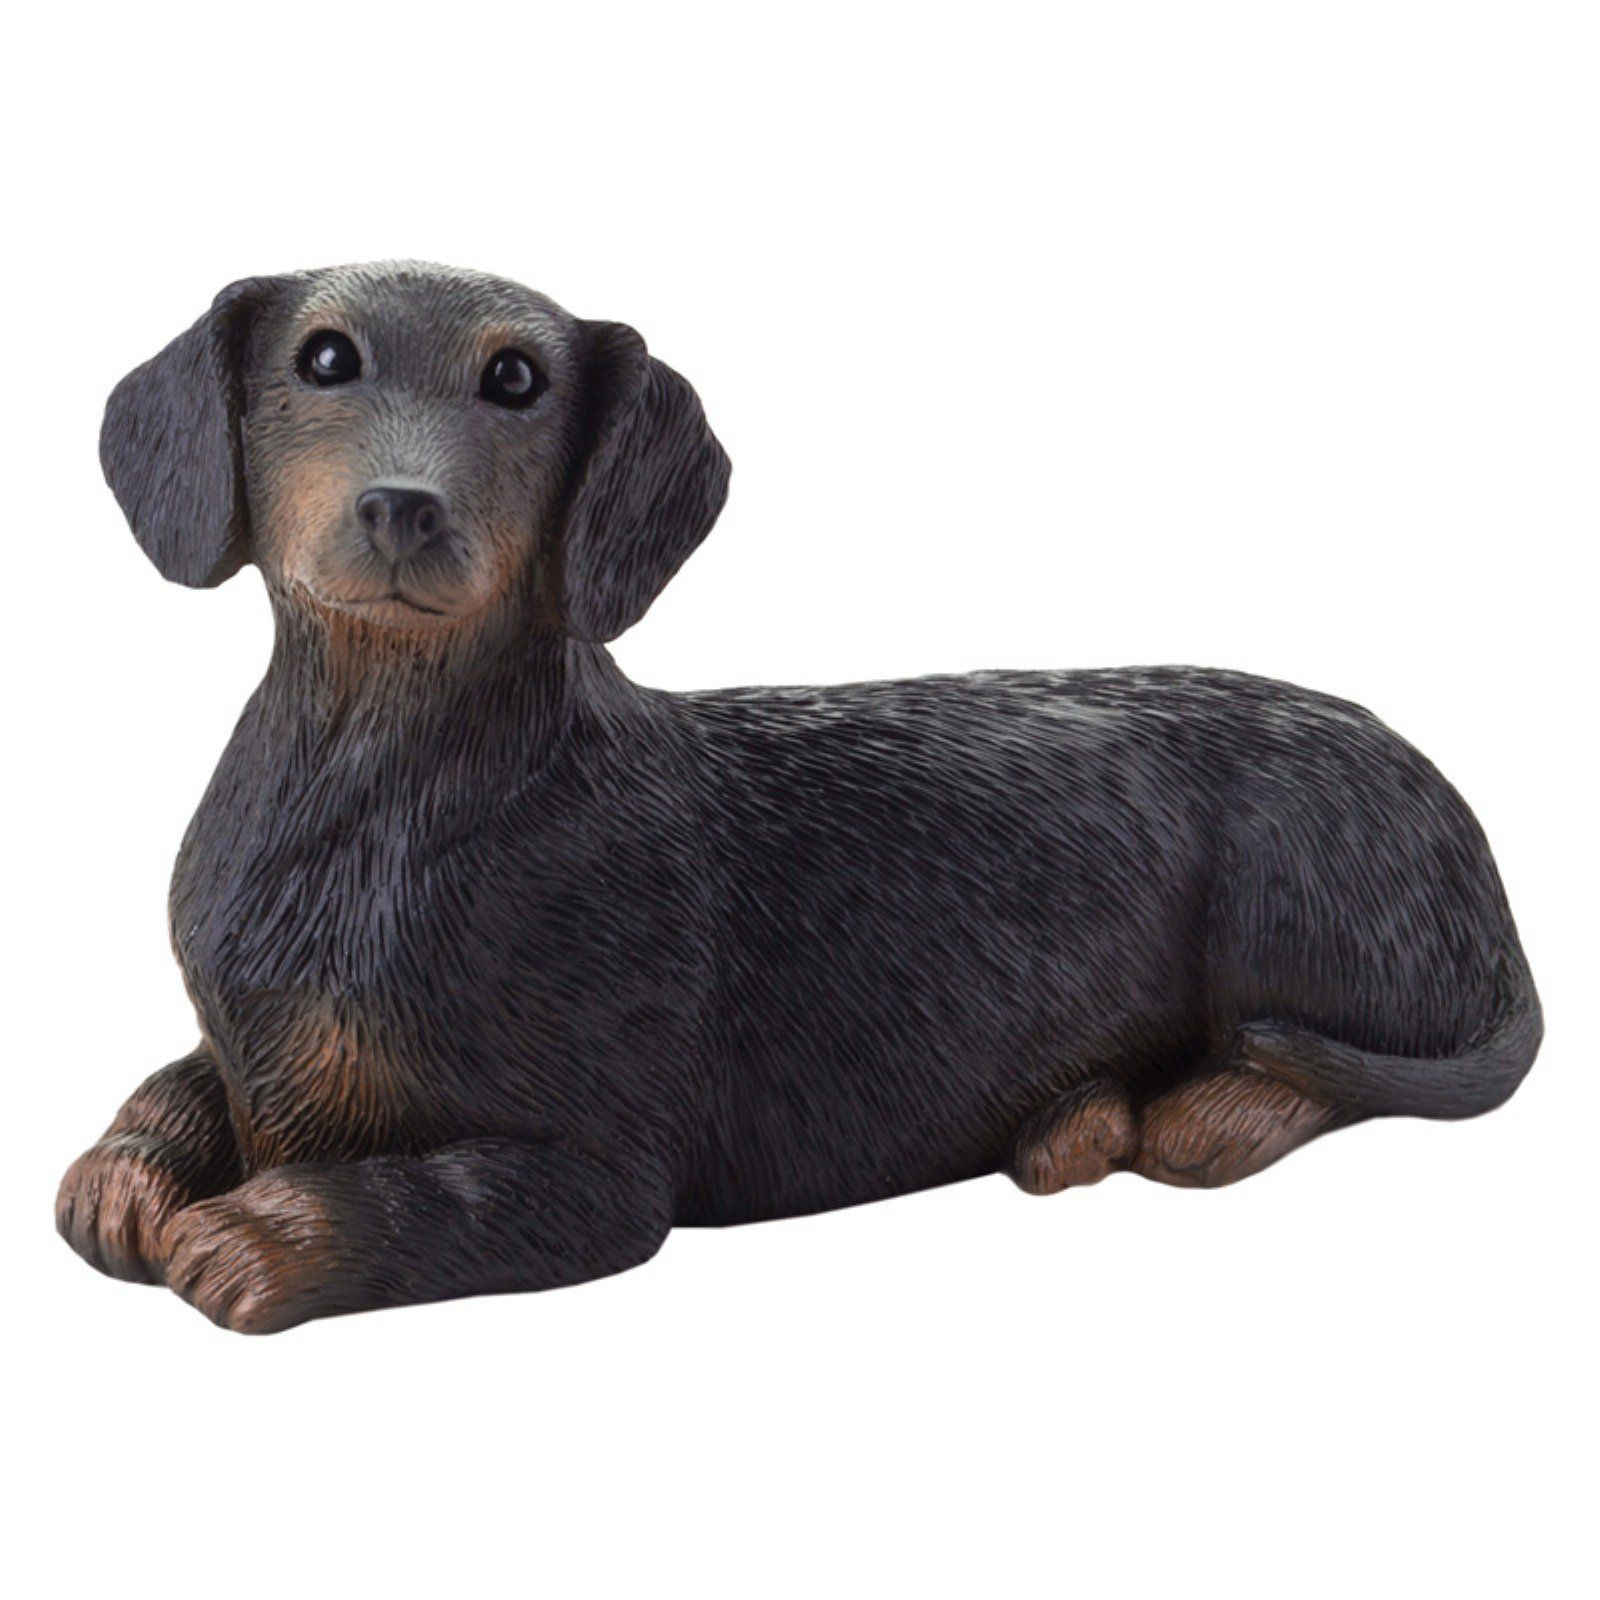 Sandicast Small Size Black Dachshund Sculpture Products In 2019